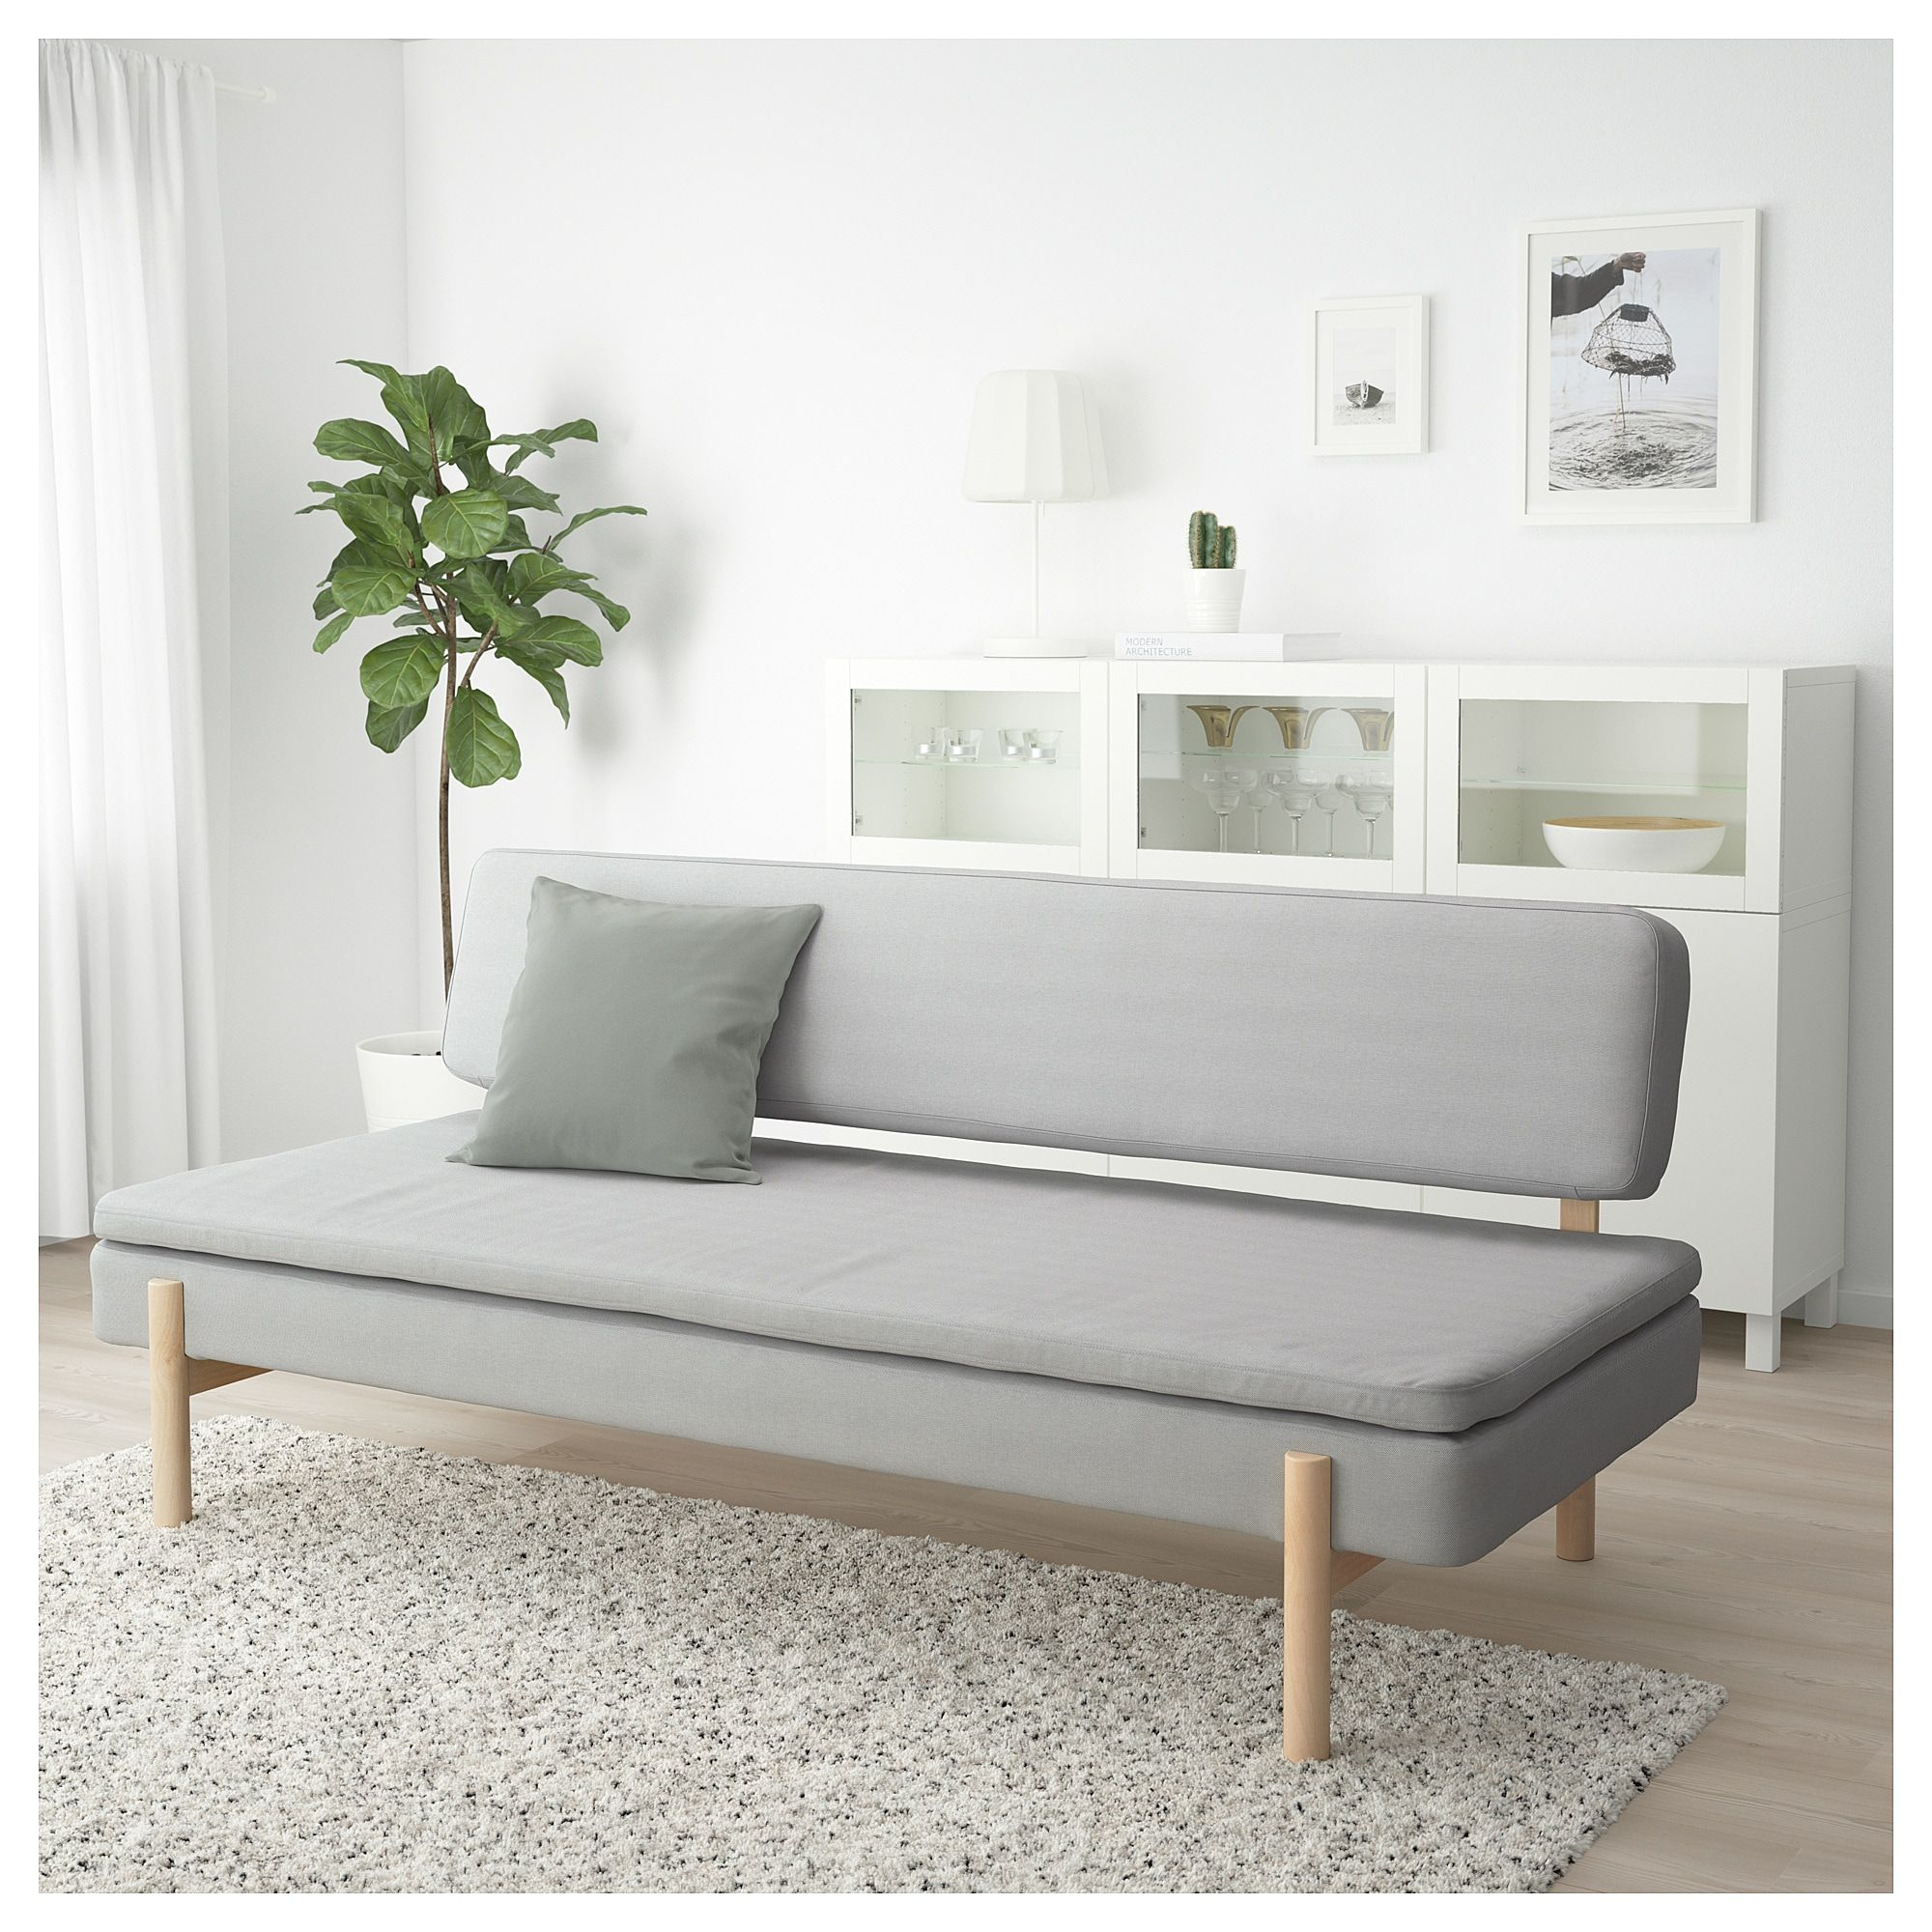 Dreisitzer Sofa Ikea Ypperlig 3 Seat Sleeper Sofa Orrsta Light Gray In 2019 Future